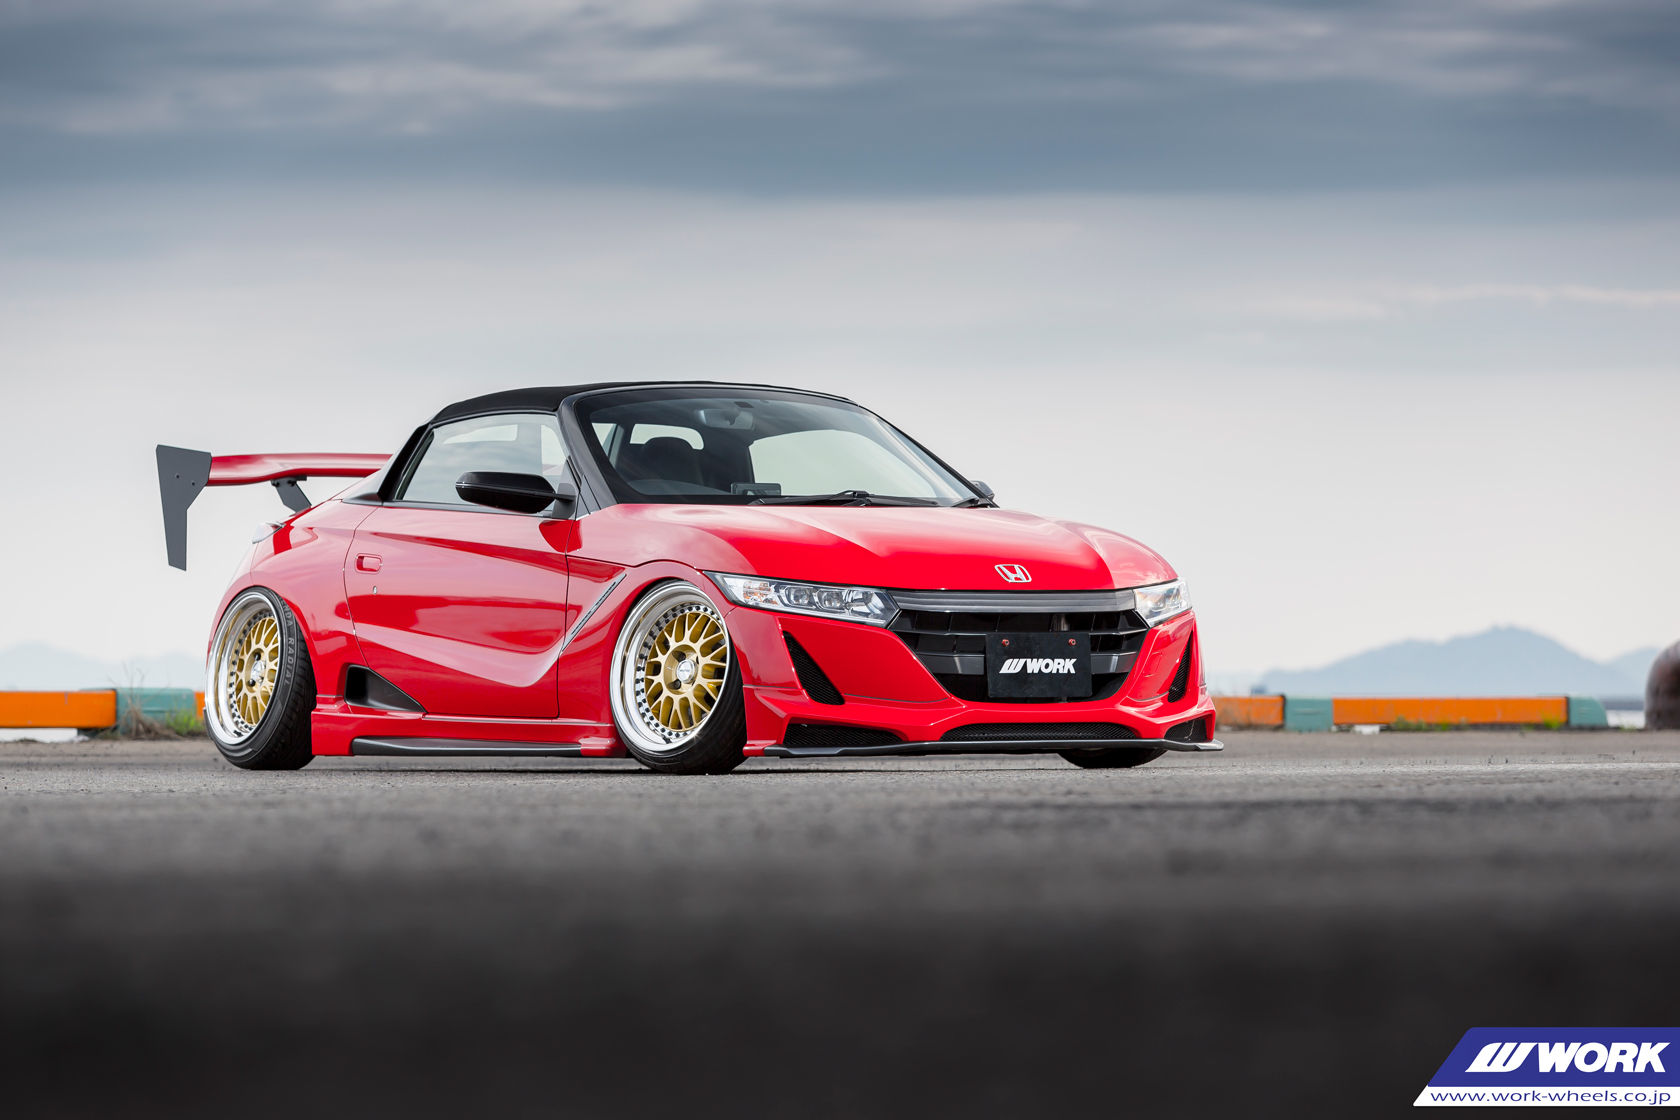 GRAND PRIX Honda S660 on WORK Meister M1 3P in Gold (GLD) Finish – Photo by WORK Wheels Japan